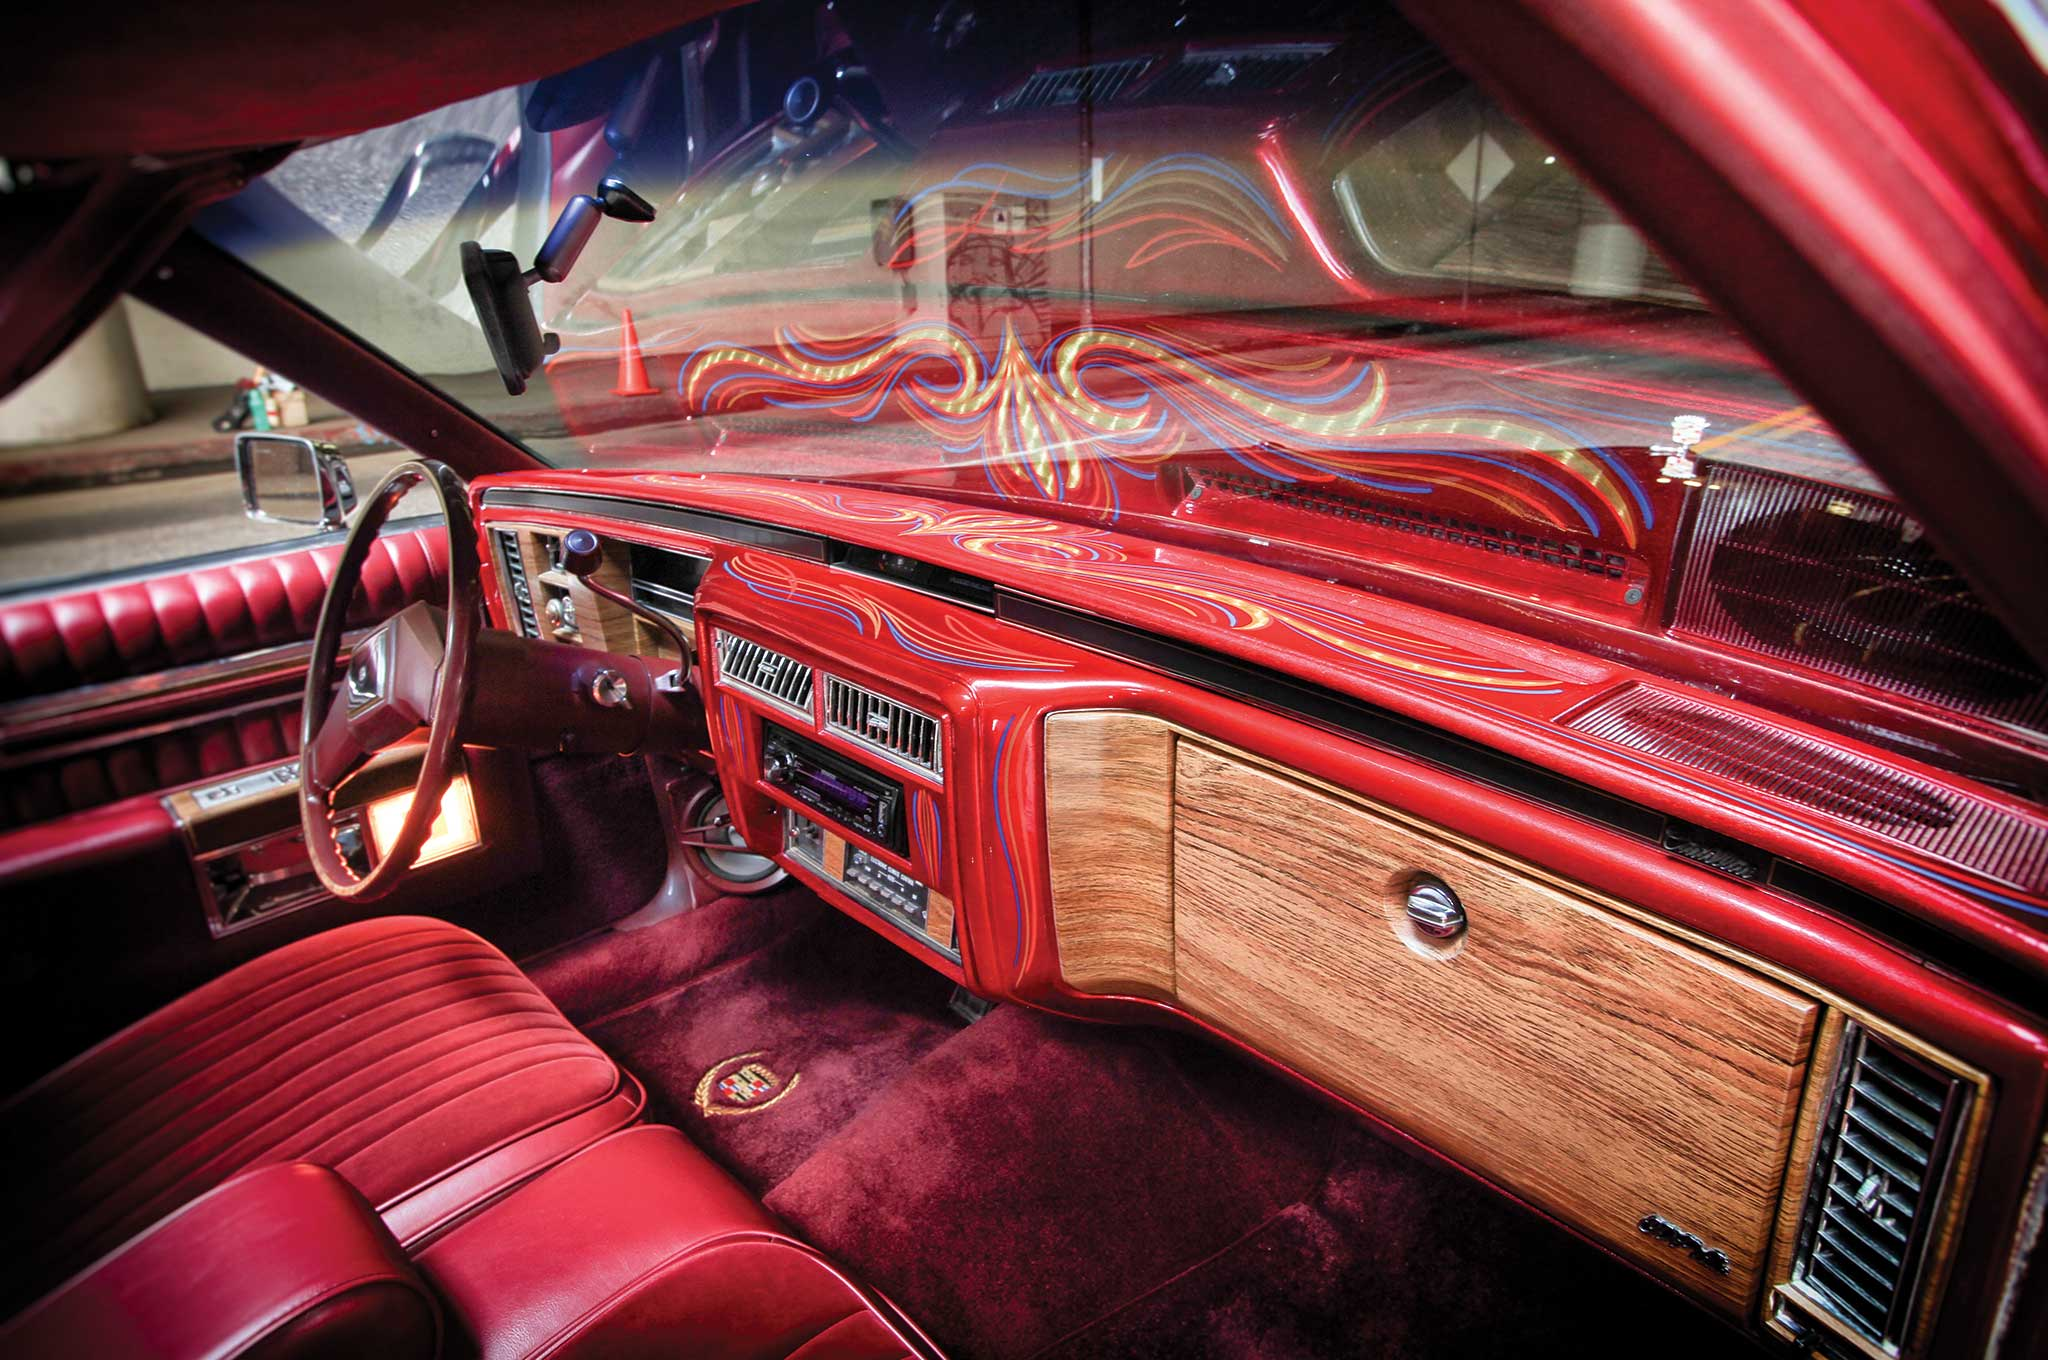 1983 cadillac coupe deville dashboard 006